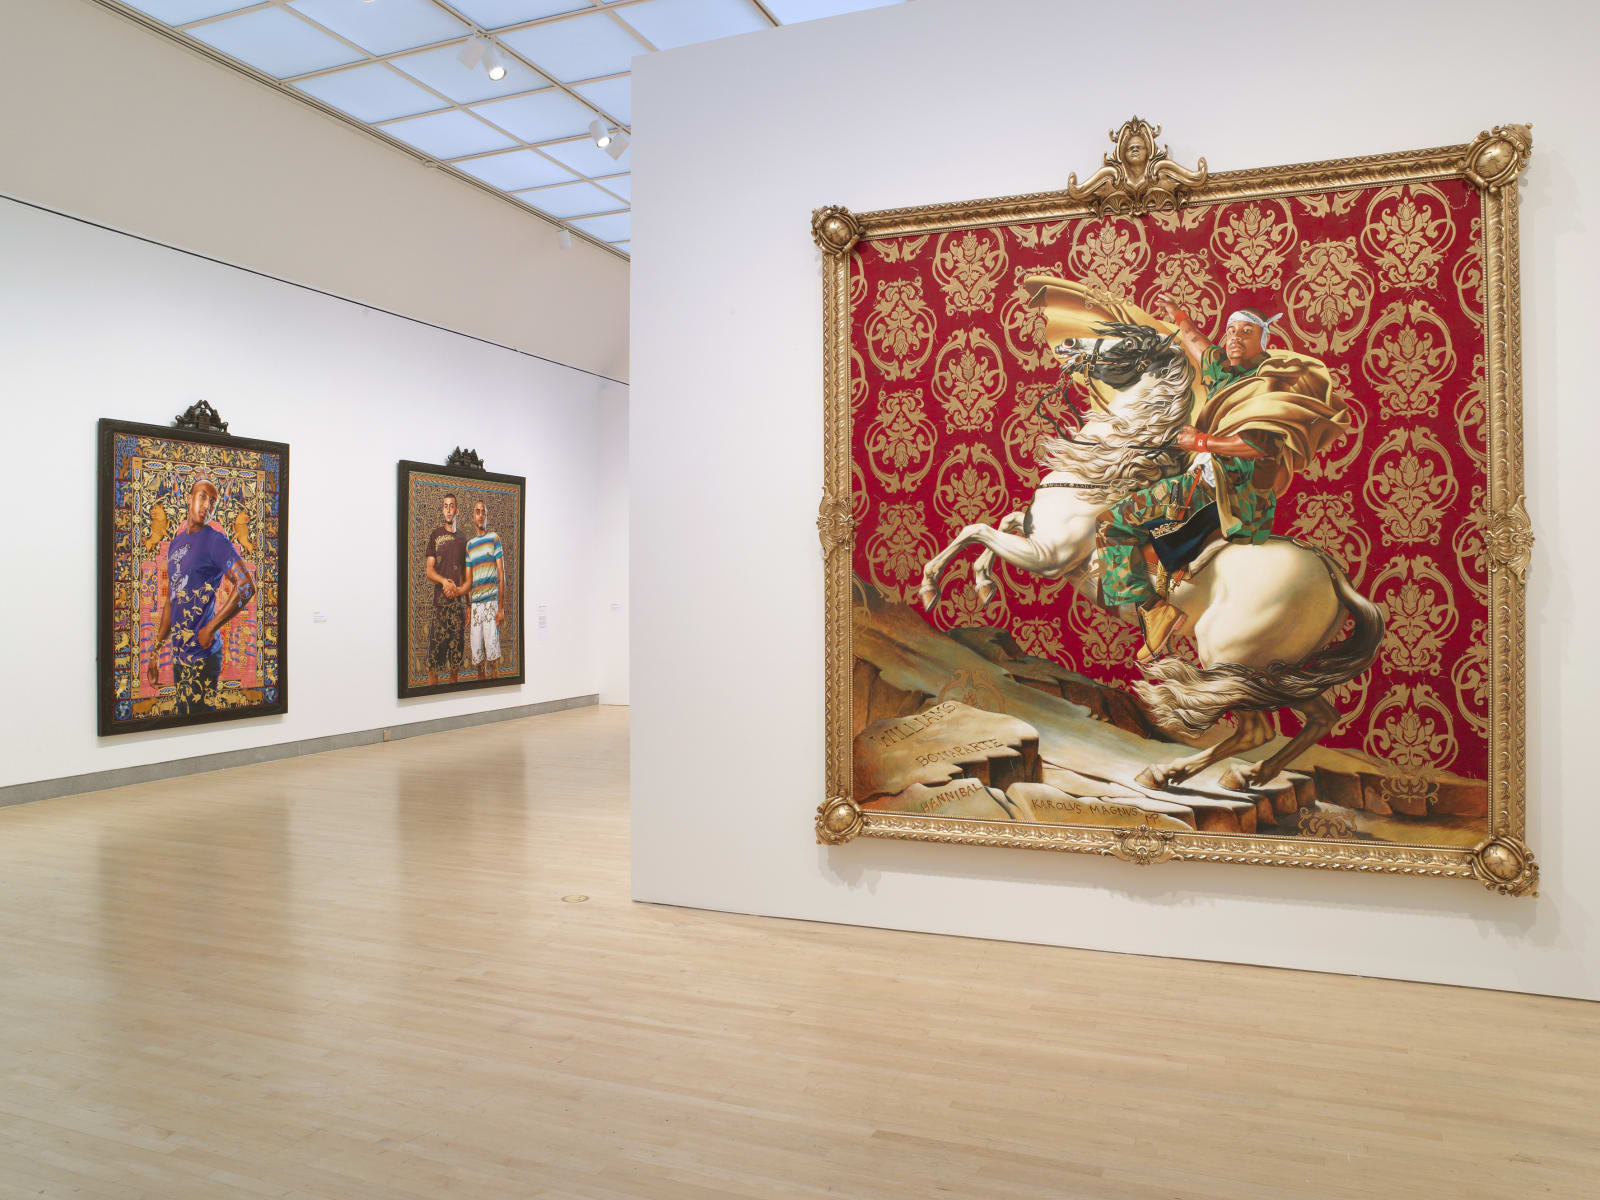 <p>Installation view: 'Kehinde Wiley: A New Republic', Brooklyn Museum, New York, NY (2015)</p>